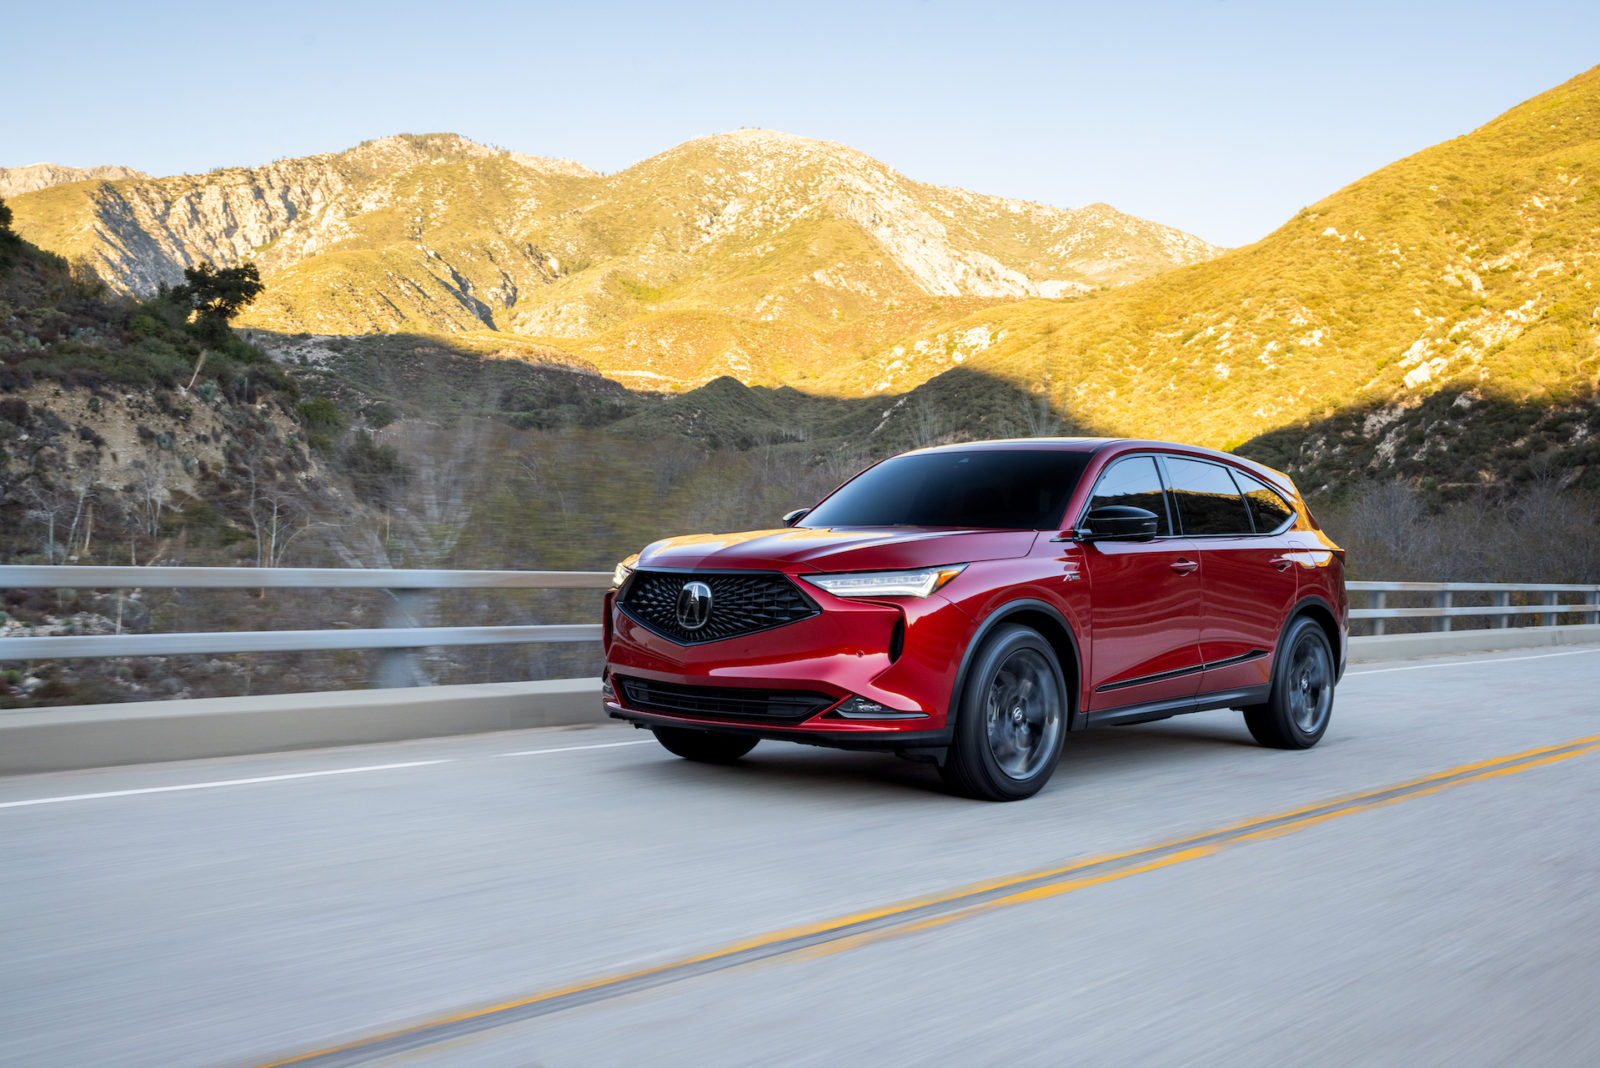 2022-acura-mdx-earns-highest-safety-honors